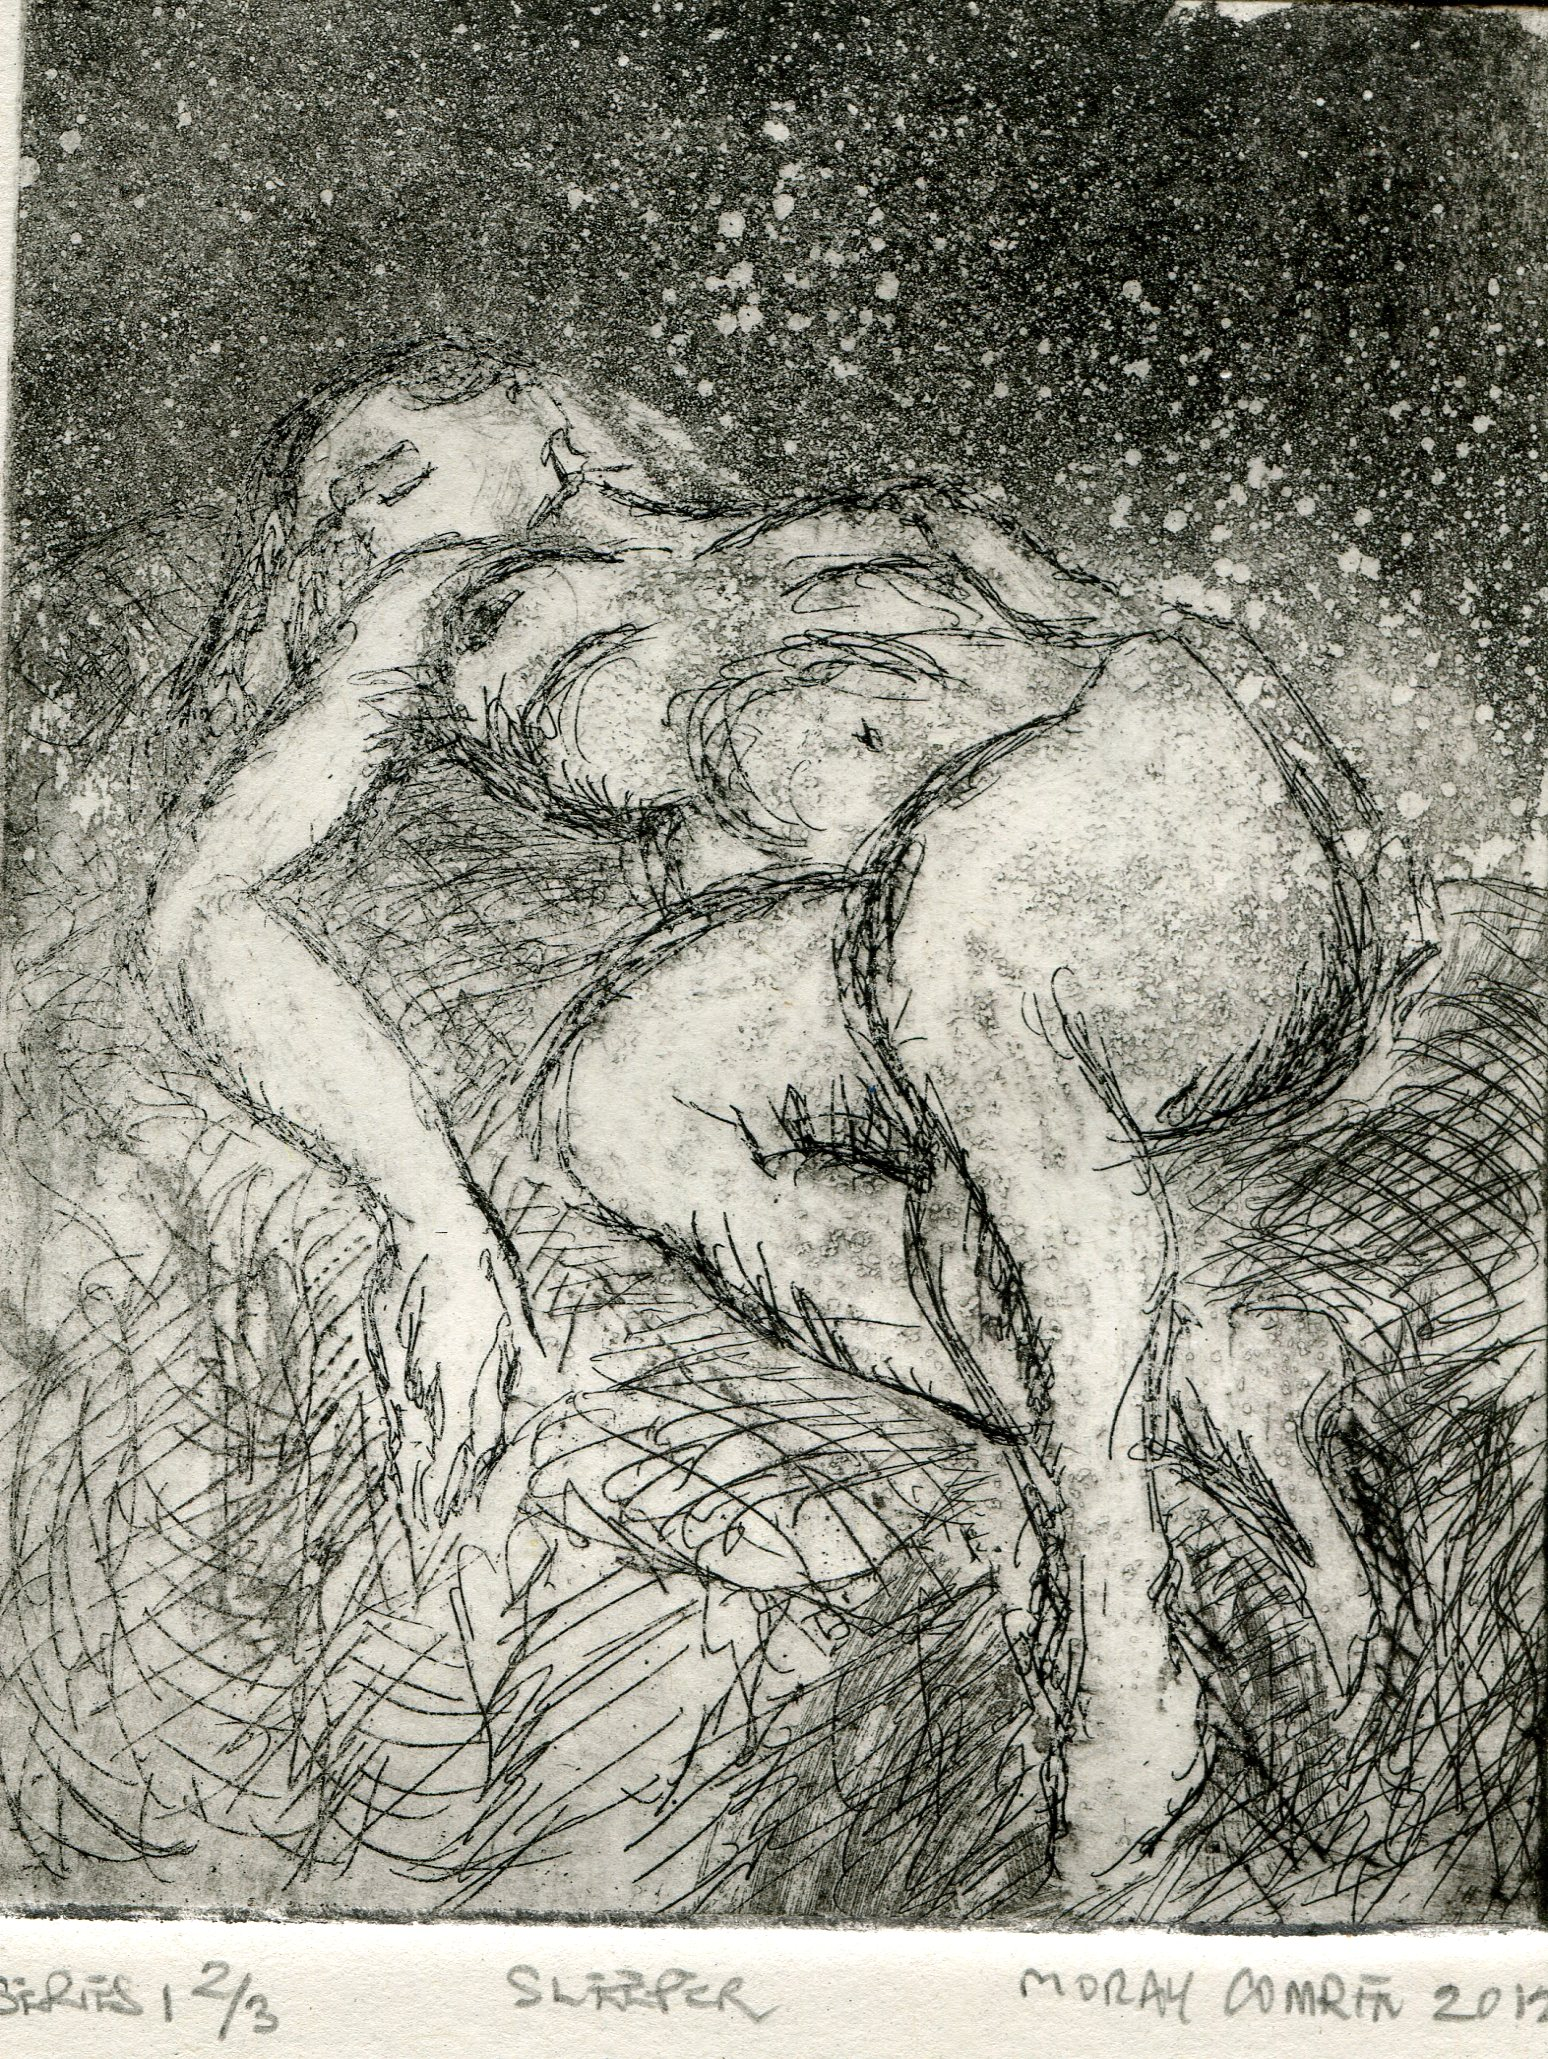 12b  Moray Comrie  Sleeper  etching on paper